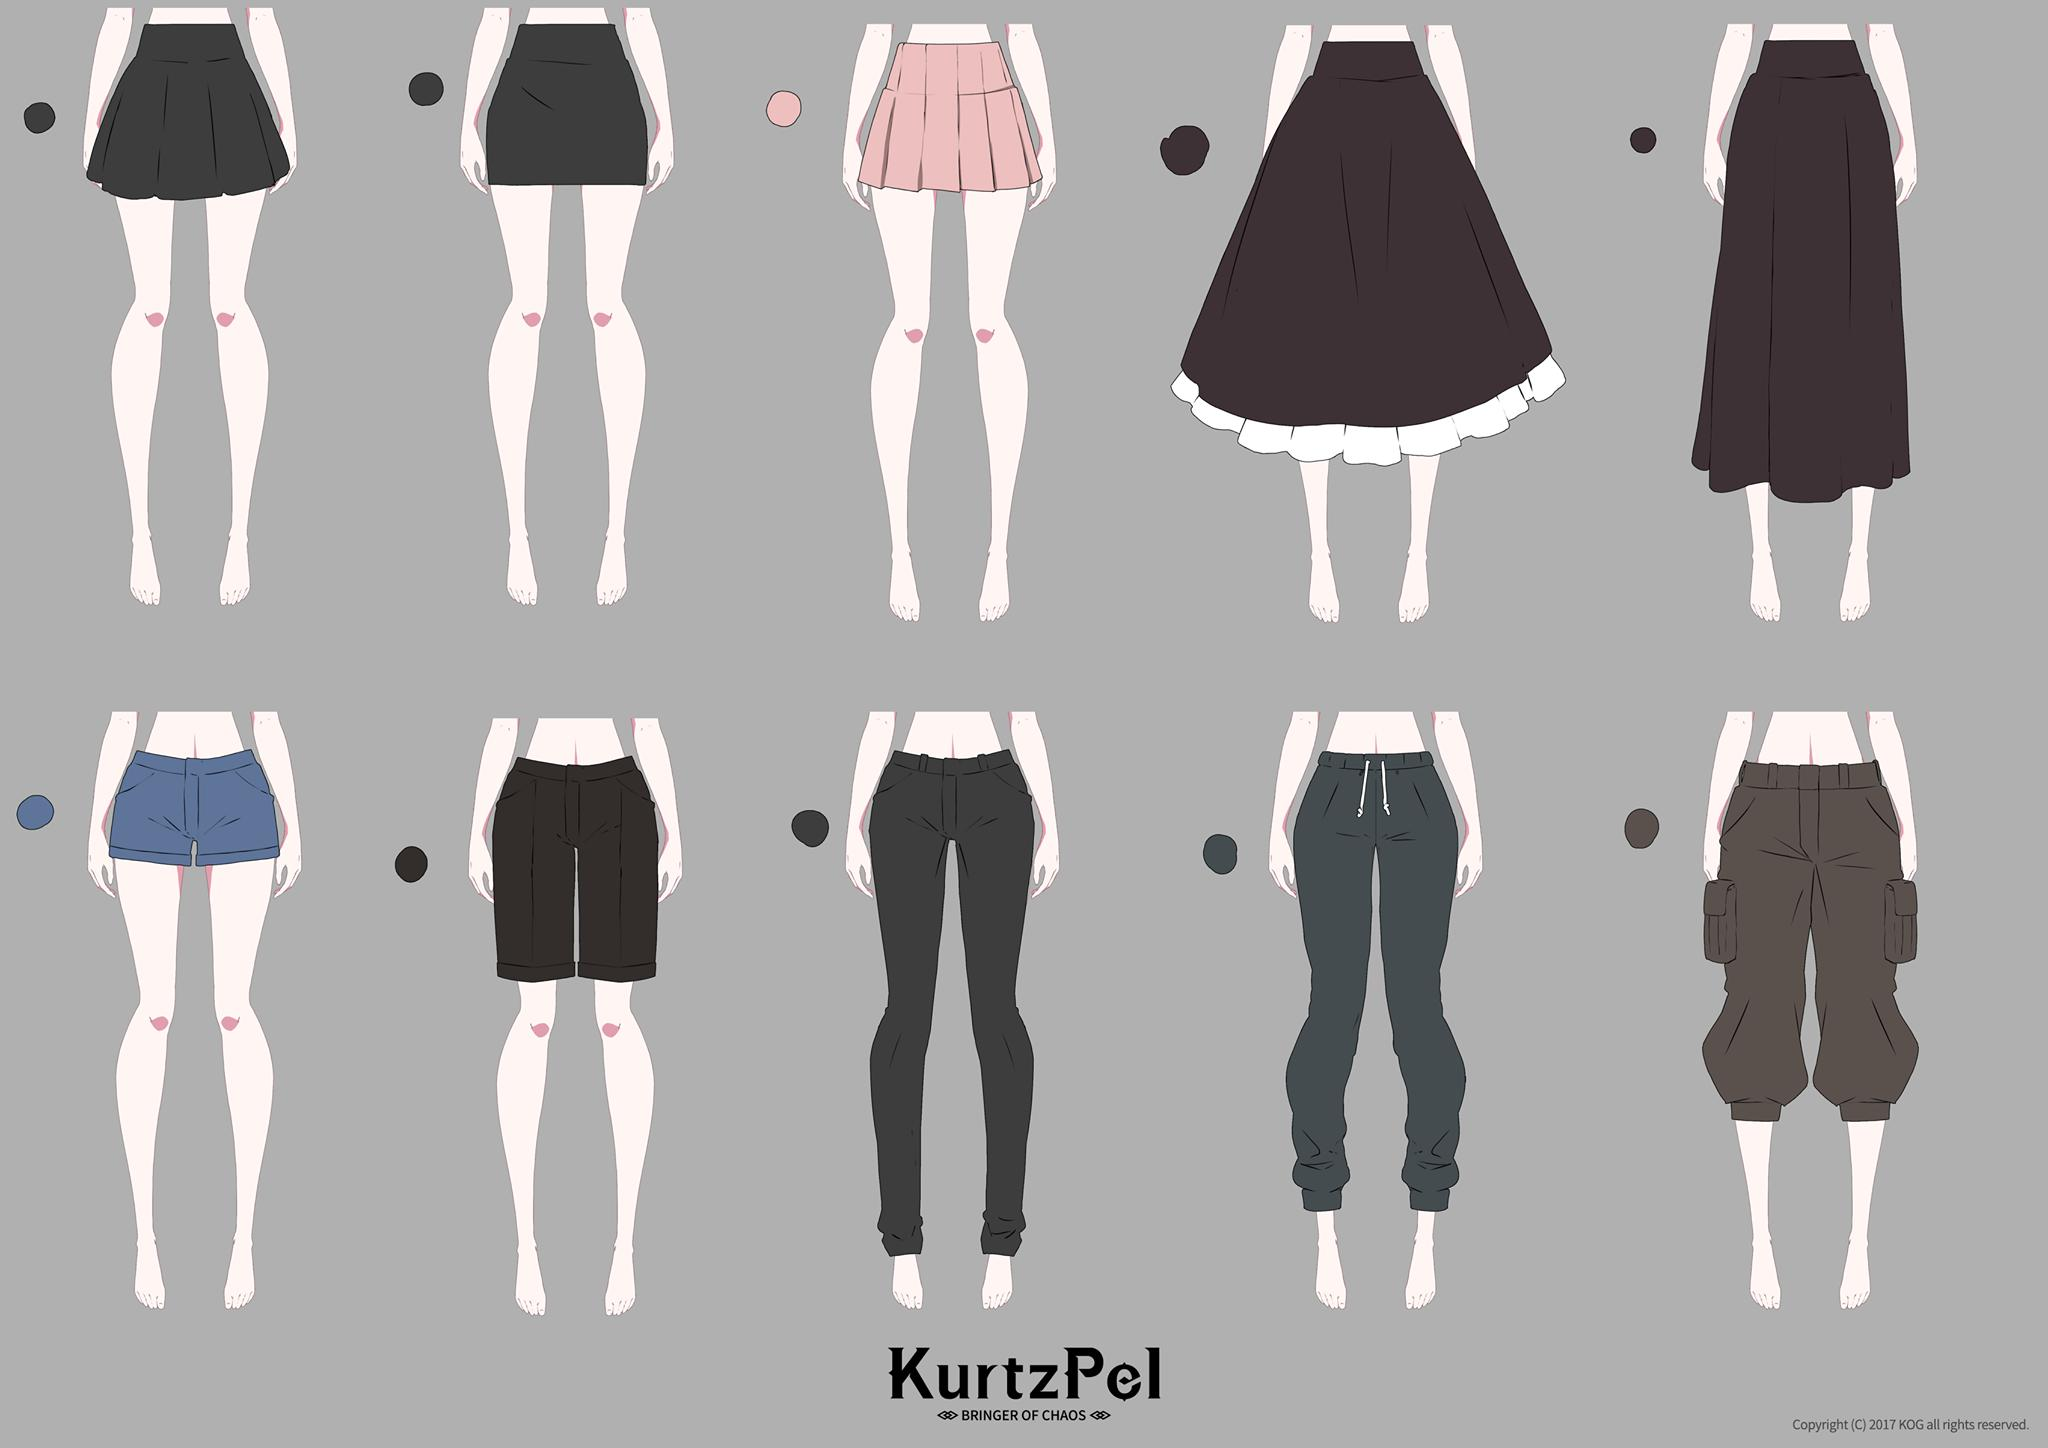 KurtzPel costumes artwork